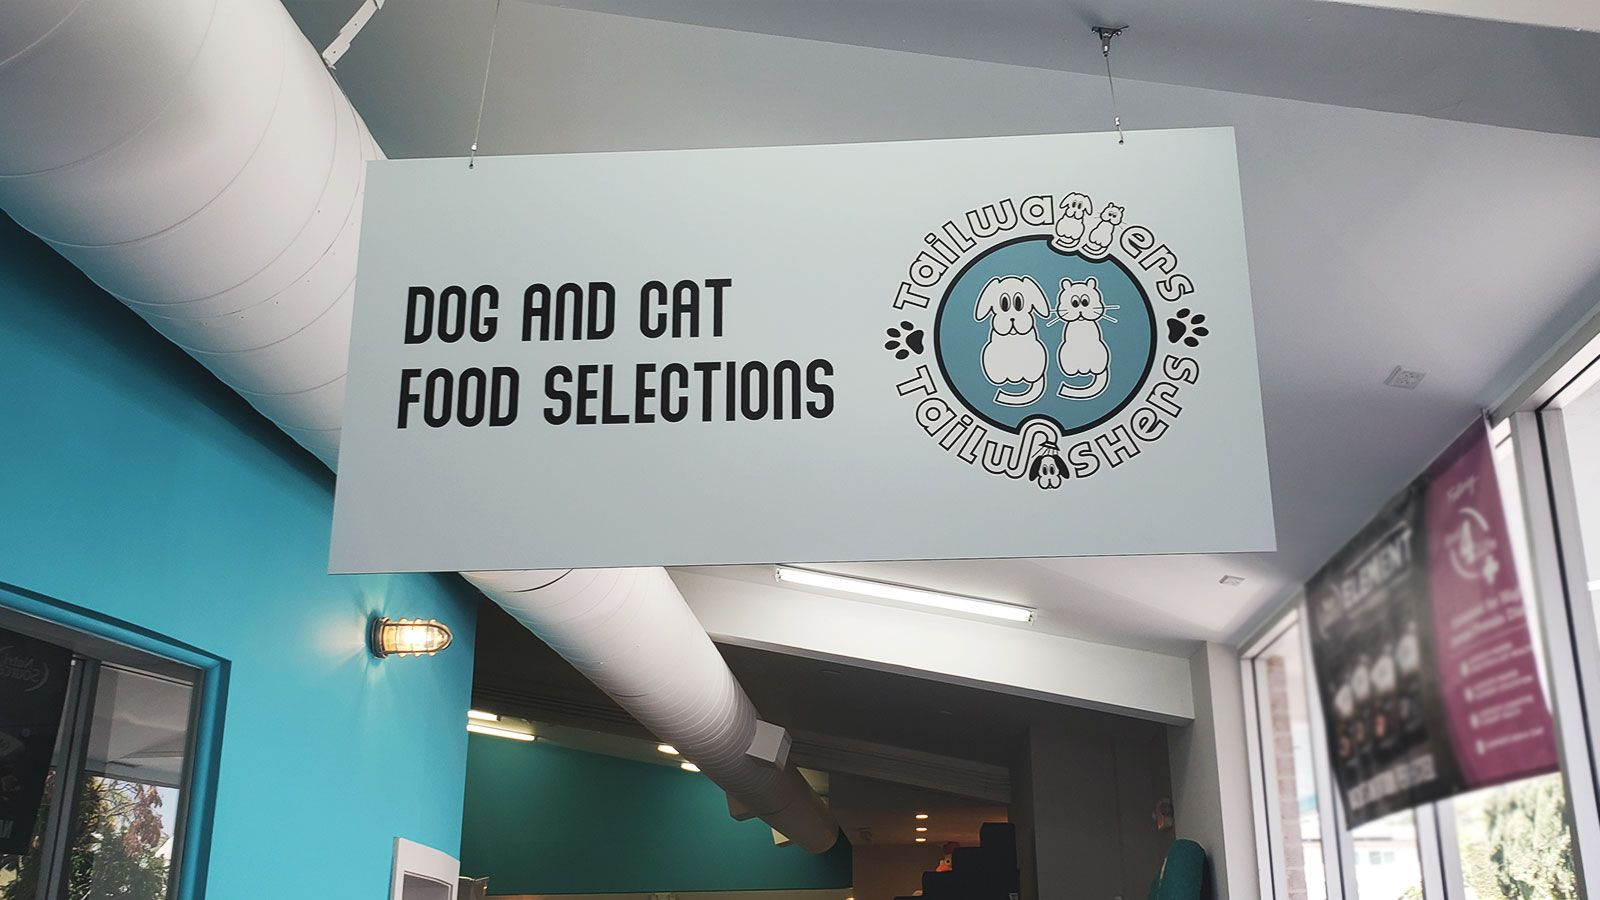 Tailwaggers hanging sign